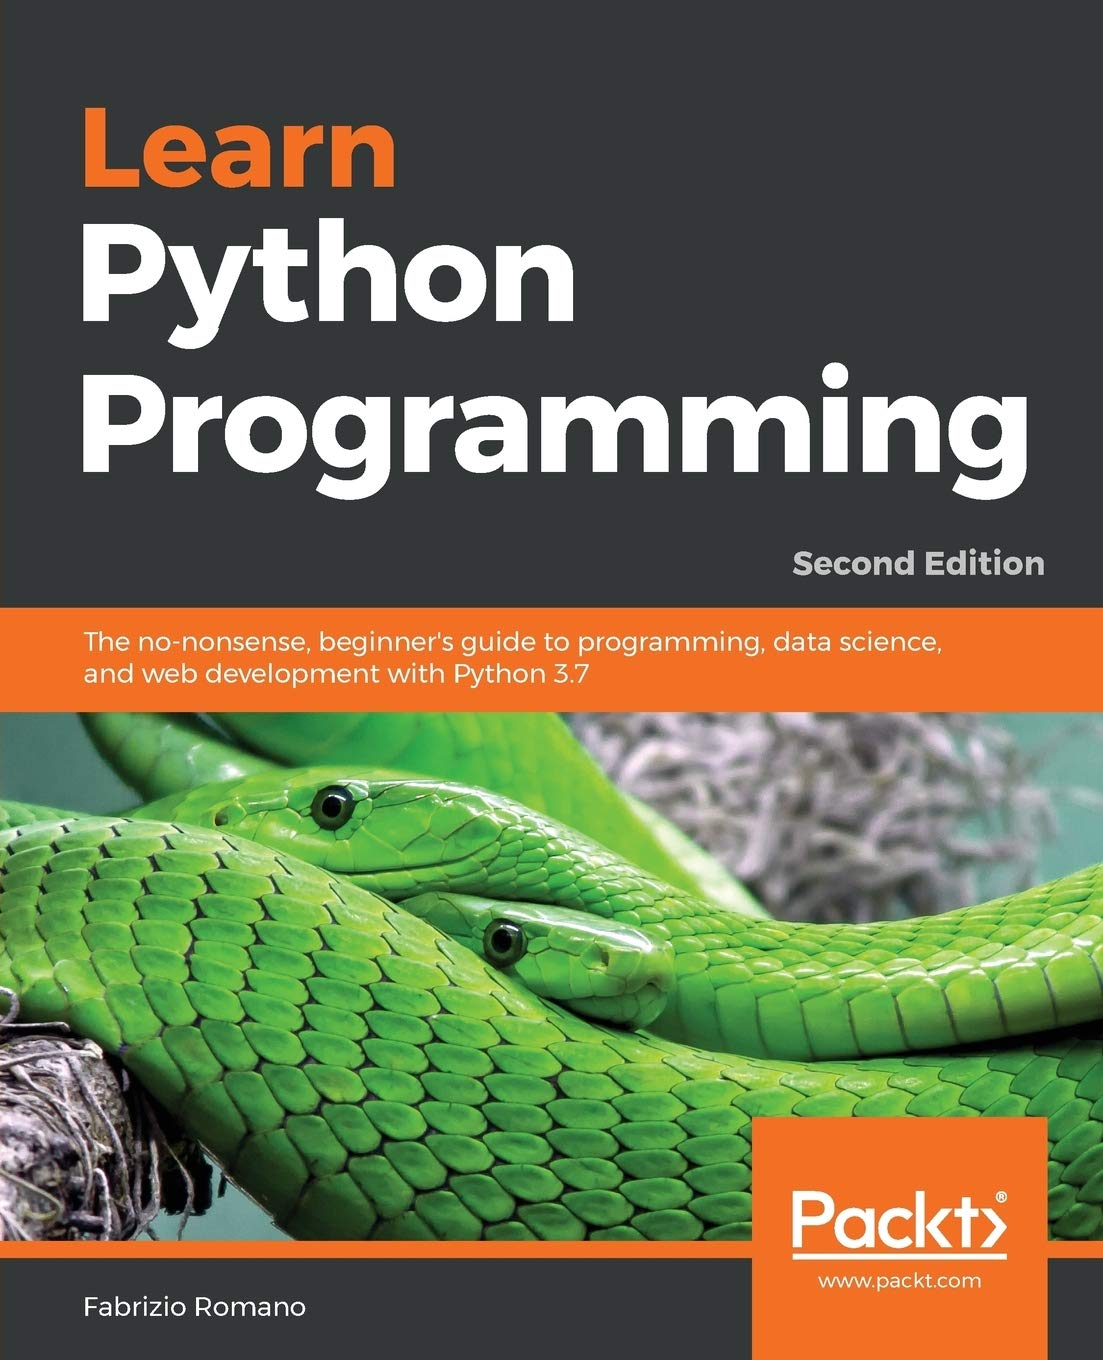 Image OfLearn Python Programming: The No-nonsense, Beginner's Guide To Programming, Data Science, And Web Development With Python ...